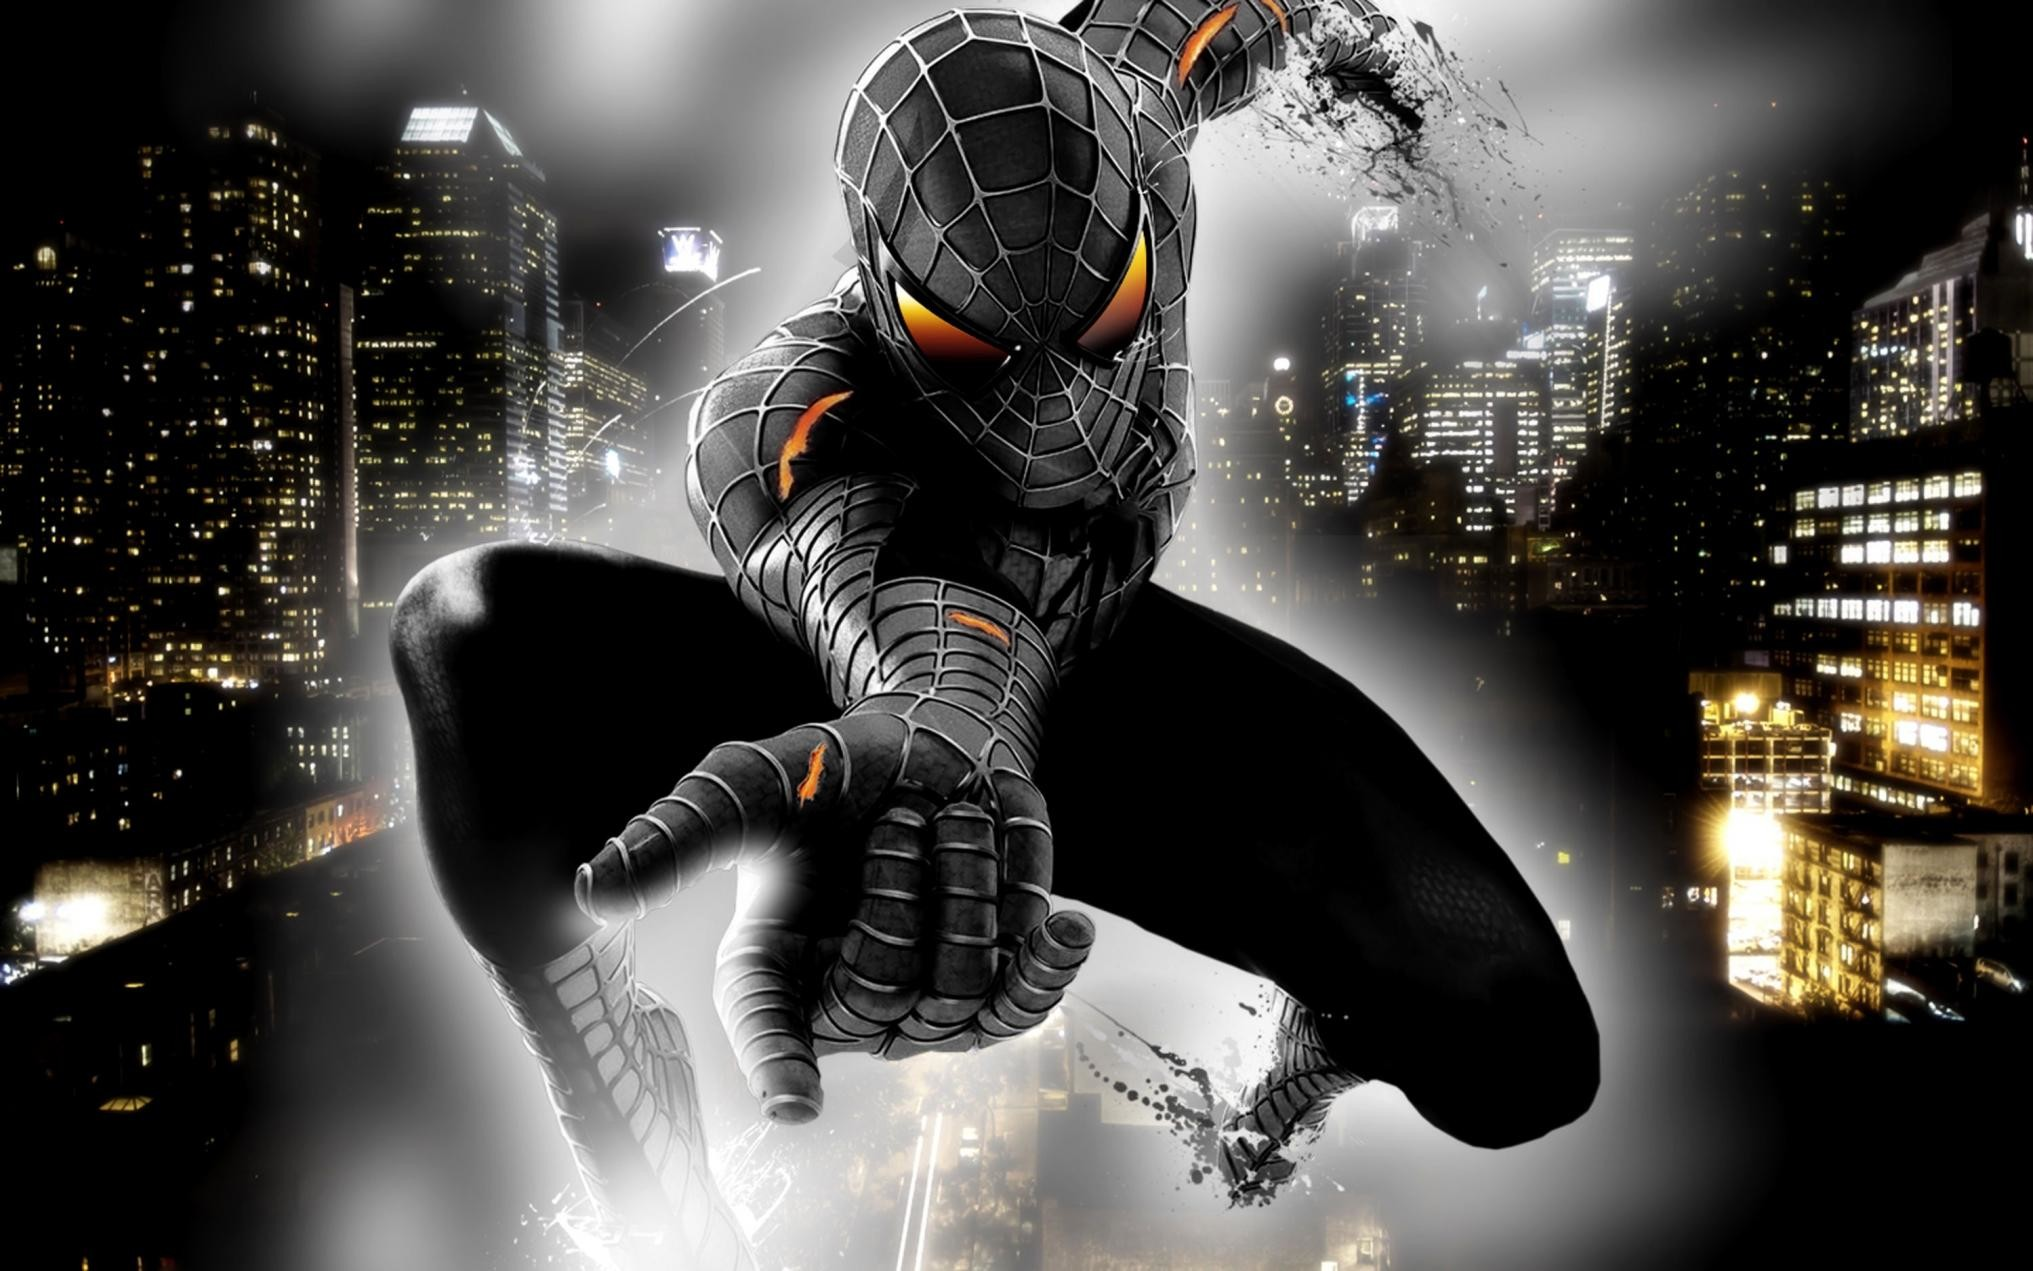 black spiderman wallpaper,graphic design,digital compositing,cg artwork,action adventure game,fictional character